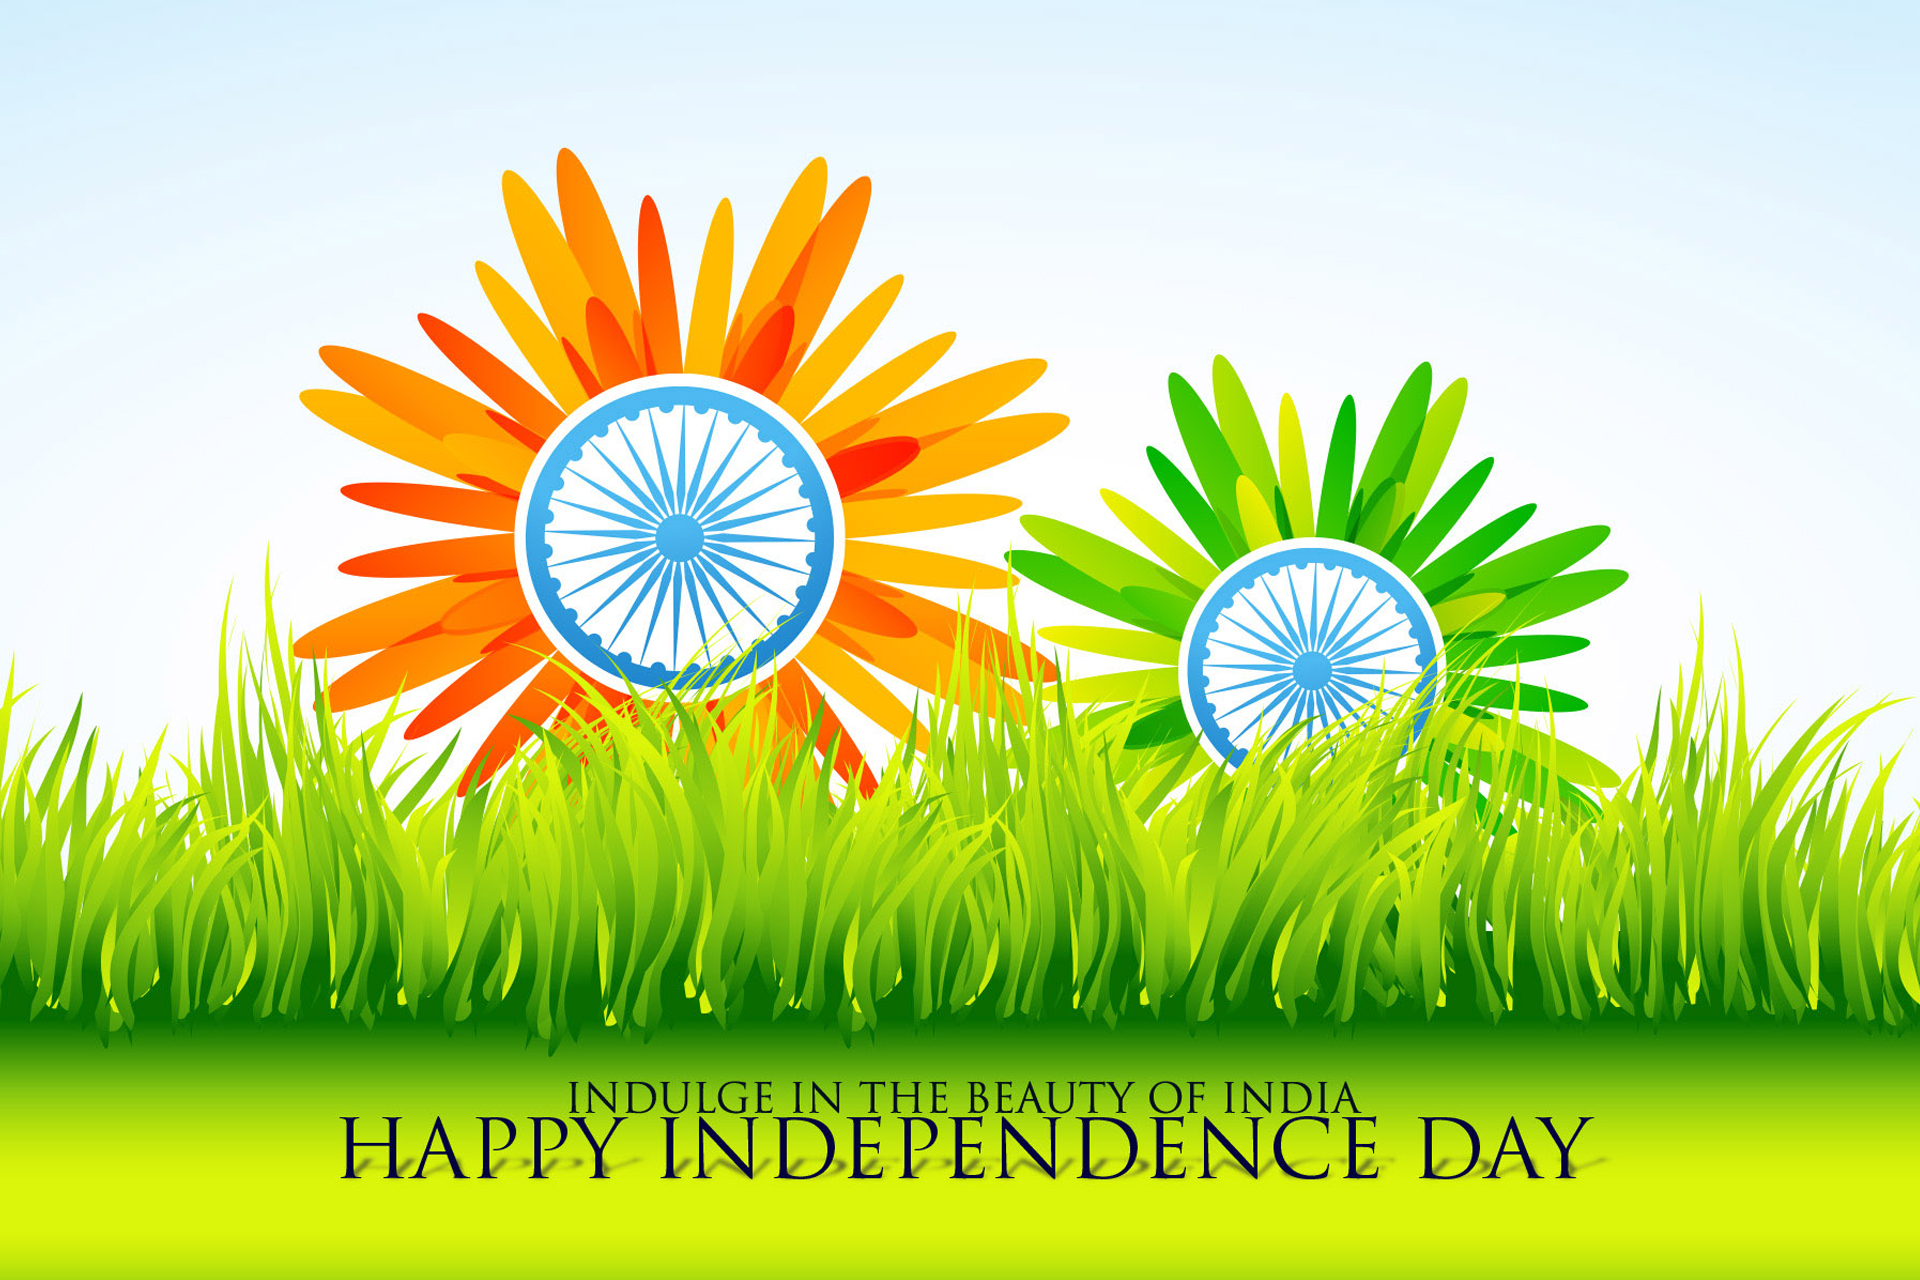 15 August Independence Day Hd Wallpaper: Happy Independence Day, India! (awesome HD Wallpapers